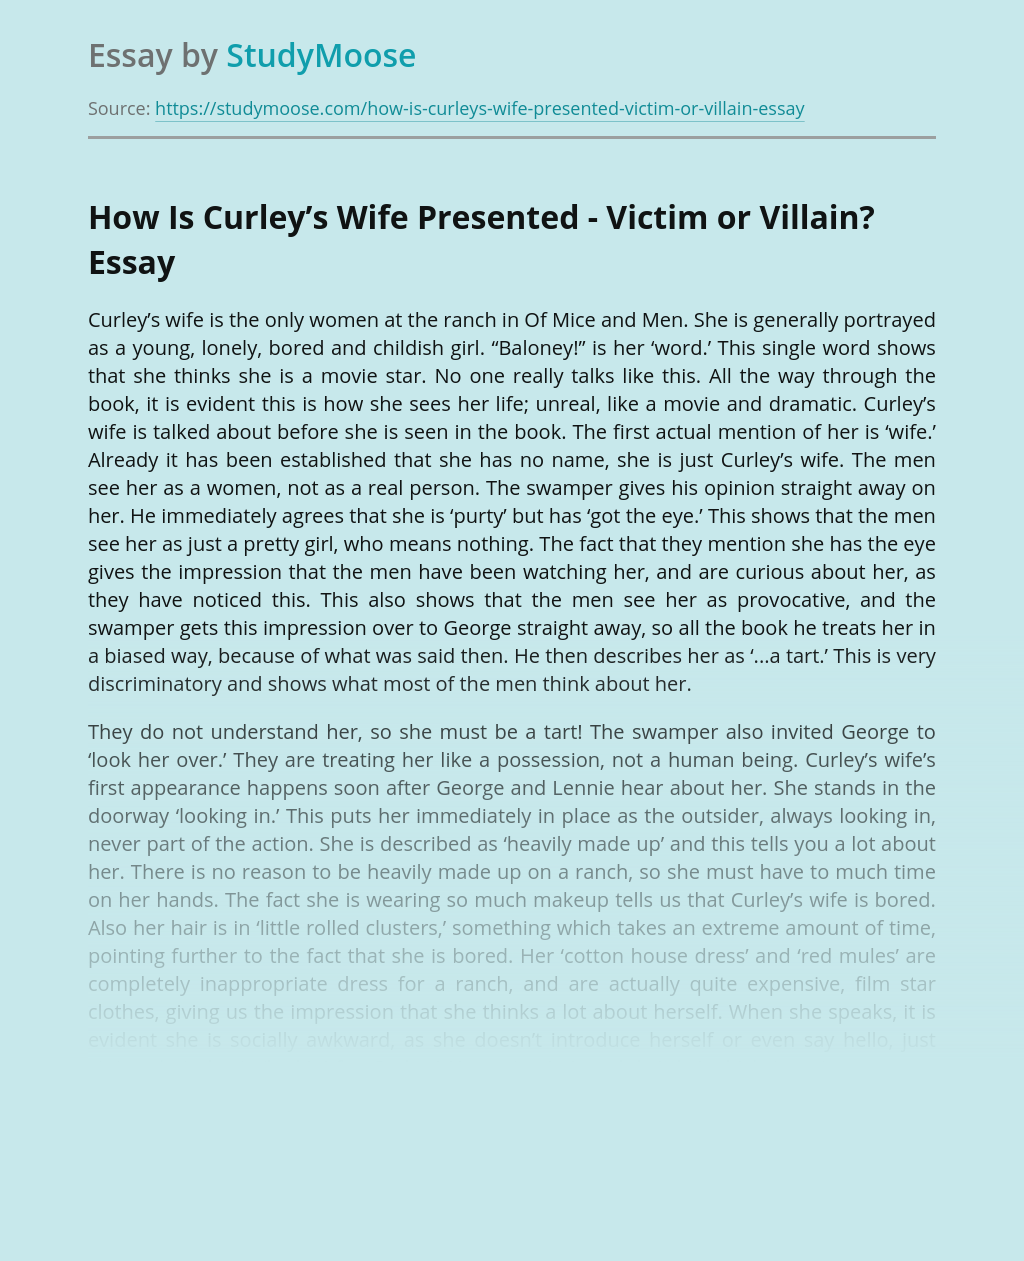 How Is Curley's Wife Presented - Victim or Villain?